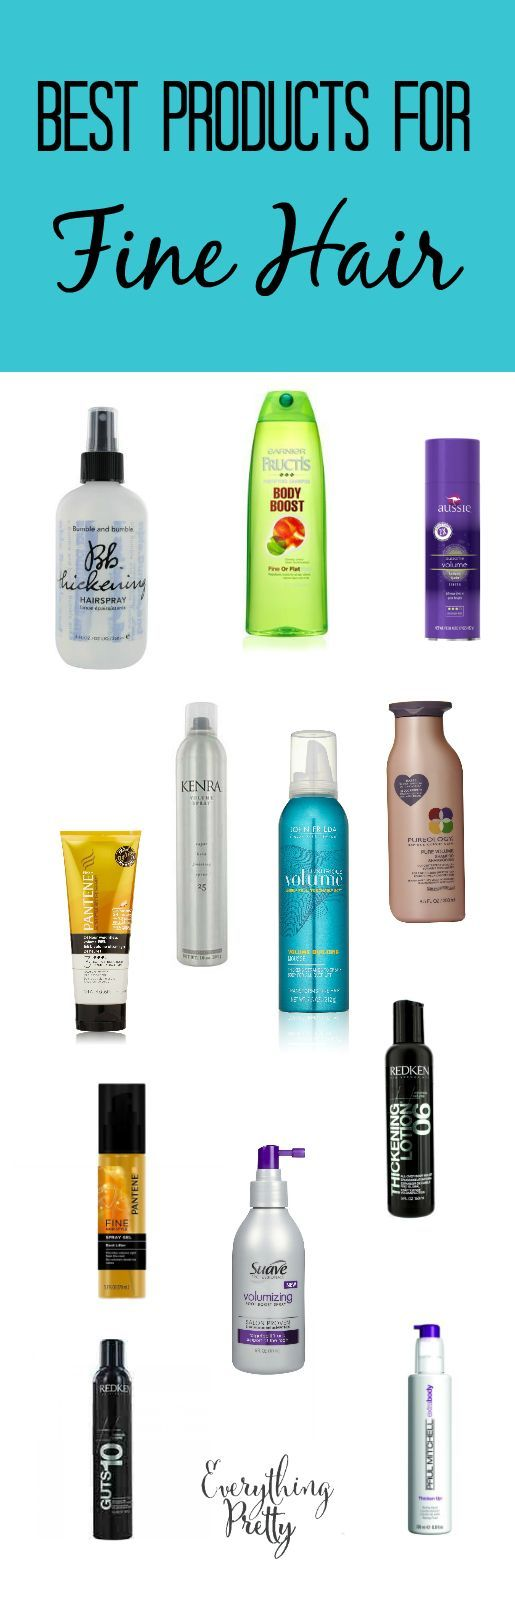 best styling products for thick hair the 25 best hair cuts ideas on medium 1745 | d111b14bbe21a556ded49343d6f63e80 best products for fine thin hair hair products best